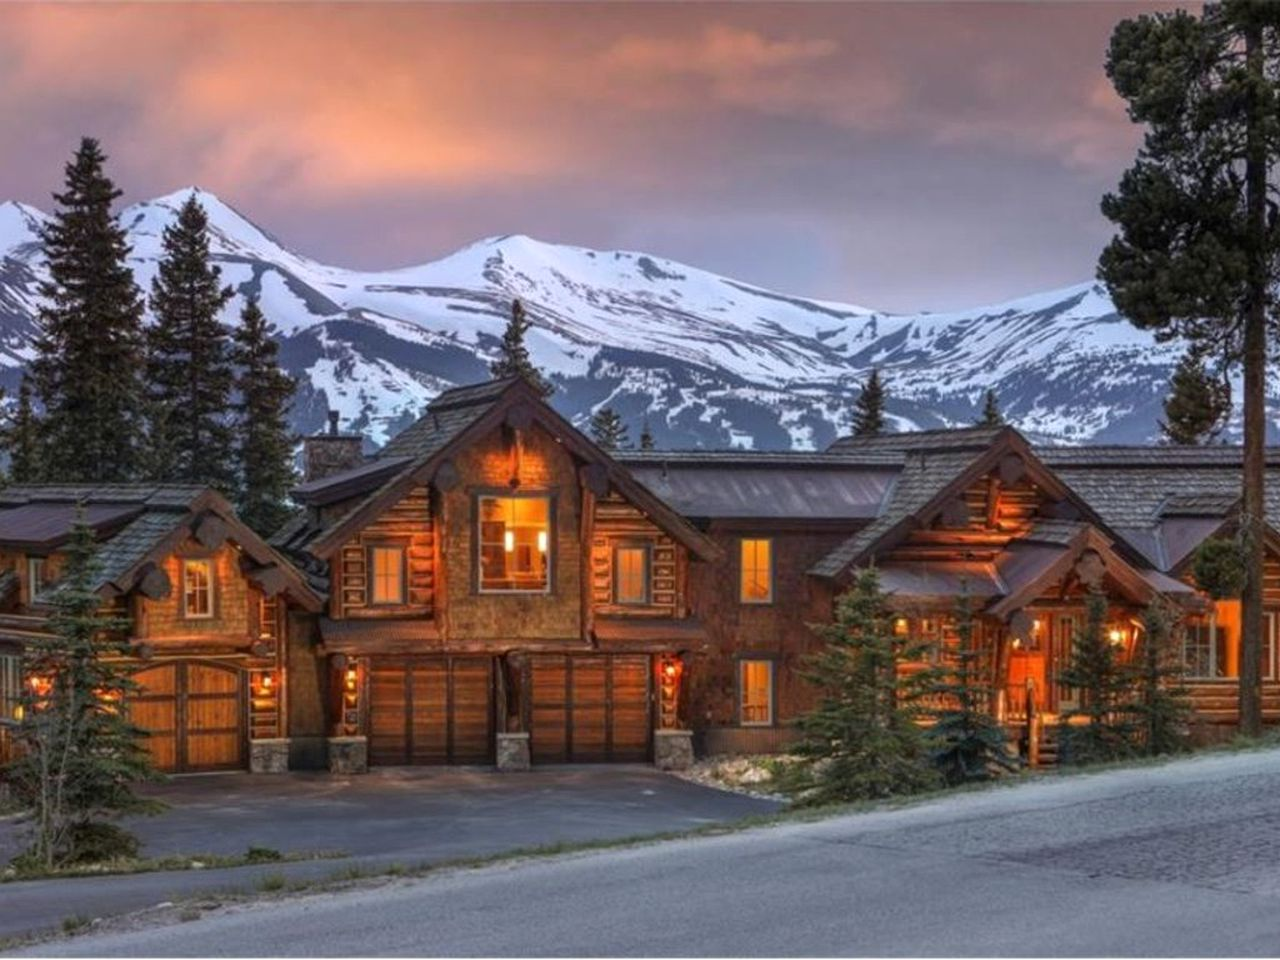 Log Cabins (Breckenridge, Colorado, United States)